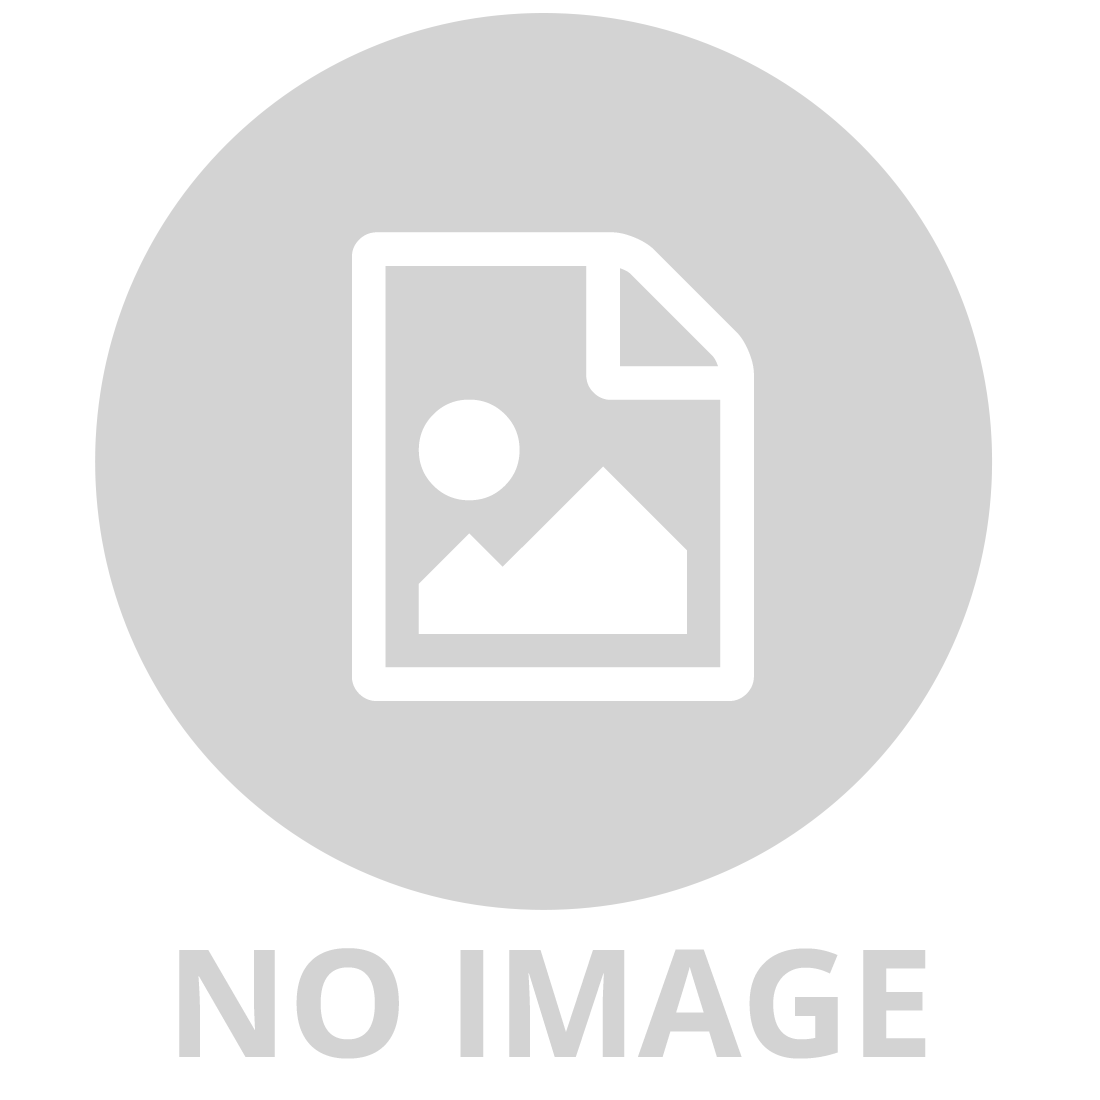 TRANSFORMERS 1 STEP TURBO CHANGER - DRAGONSTORM